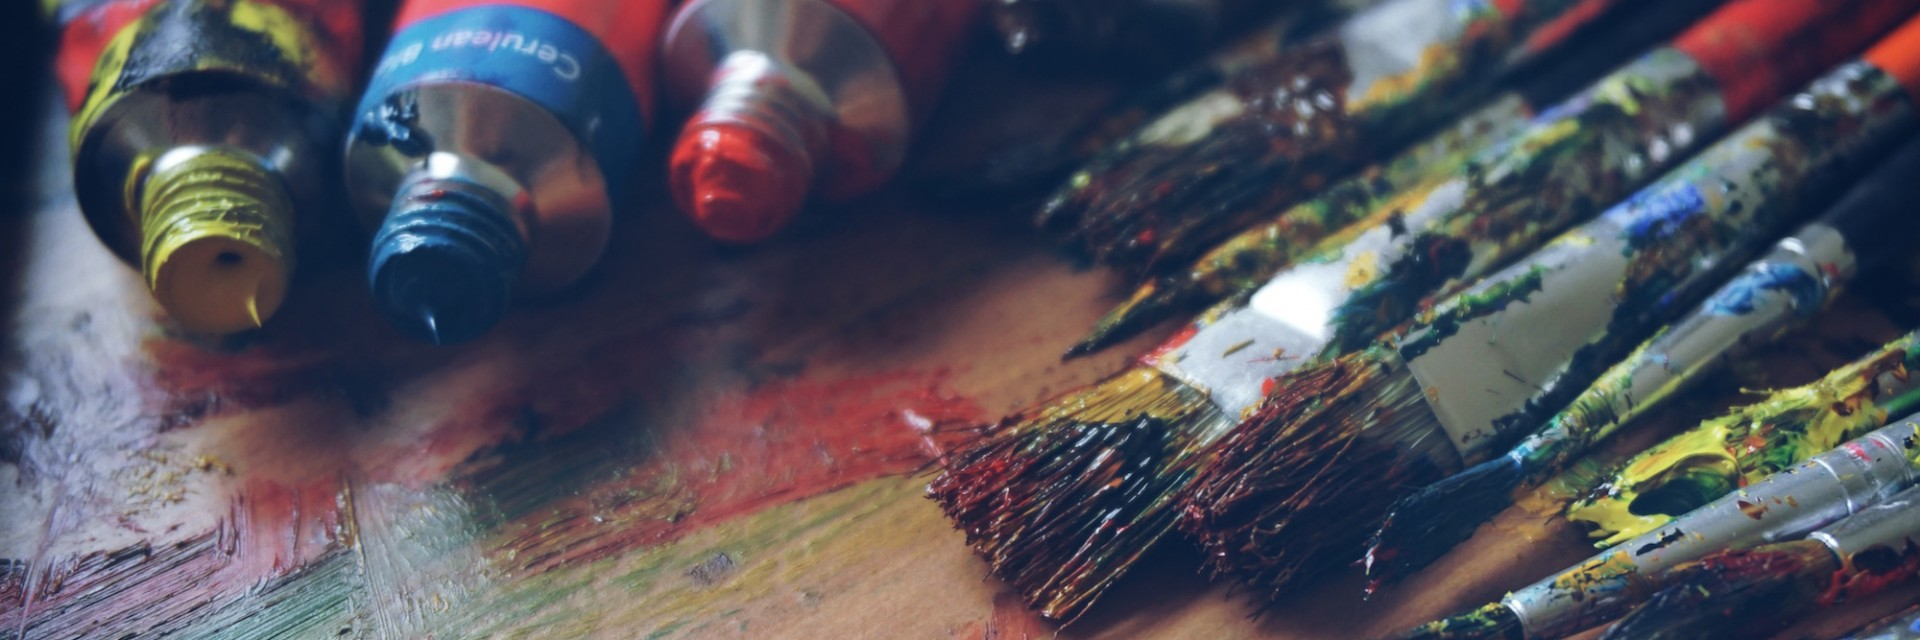 A rich pallette of freshly used paints and paintbrushes from a day of creating art